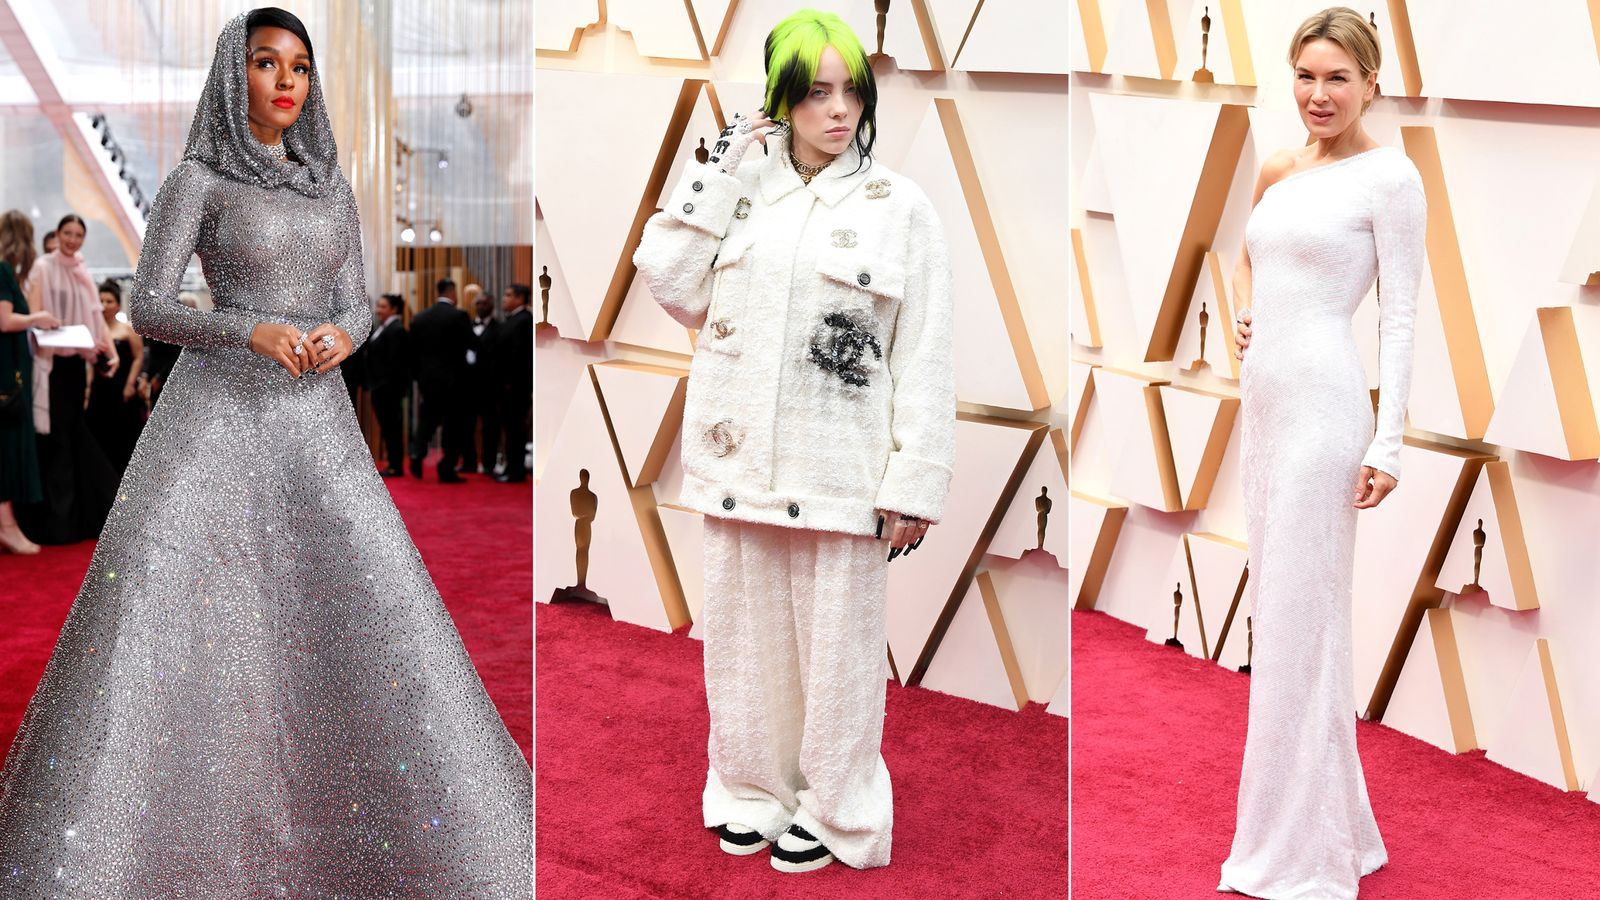 Oscars fashion: The best of the red carpet looks